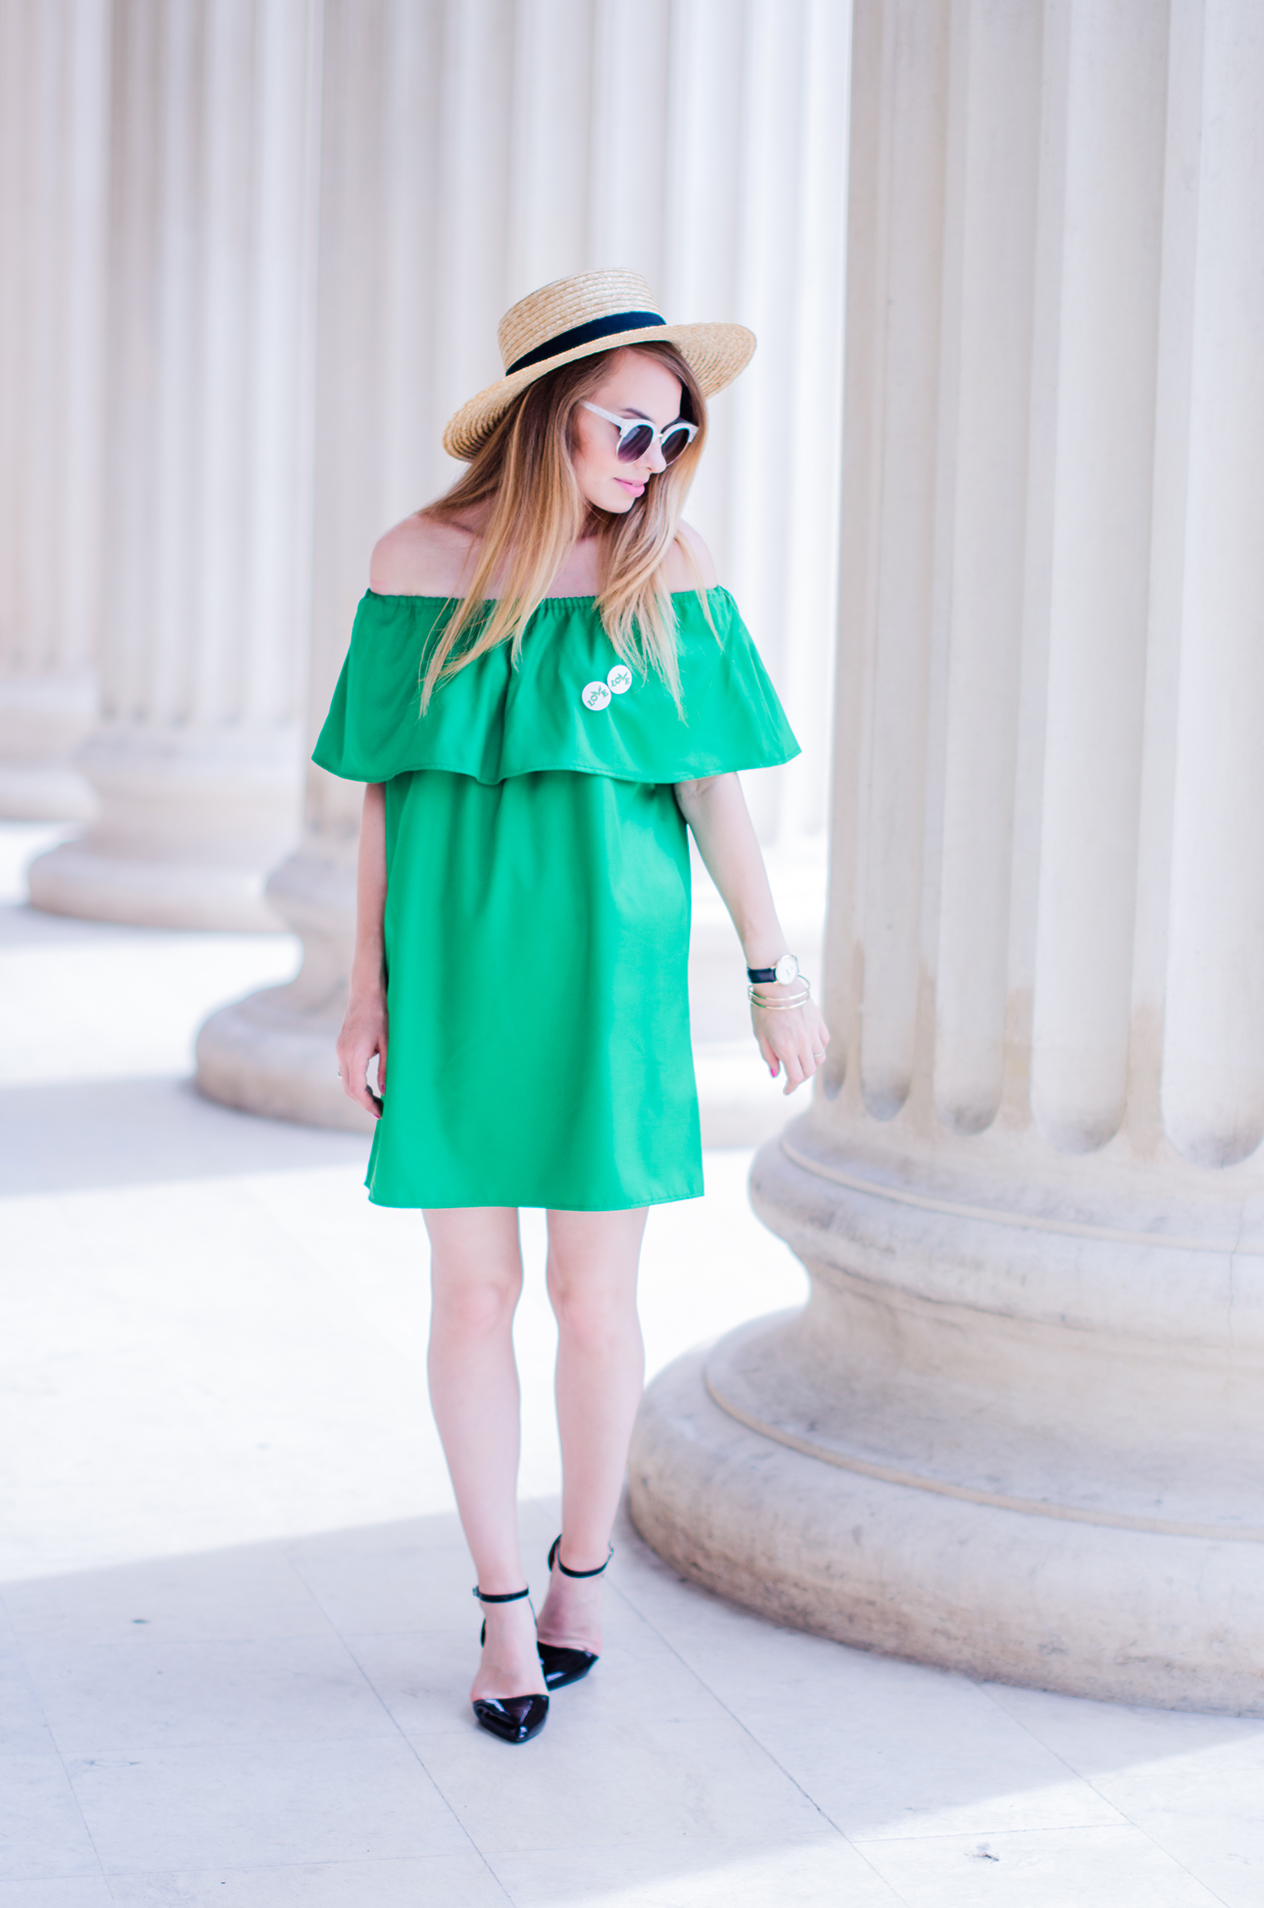 off-shoulder-dress-hm-straw-hat-strappy-shoes (11)